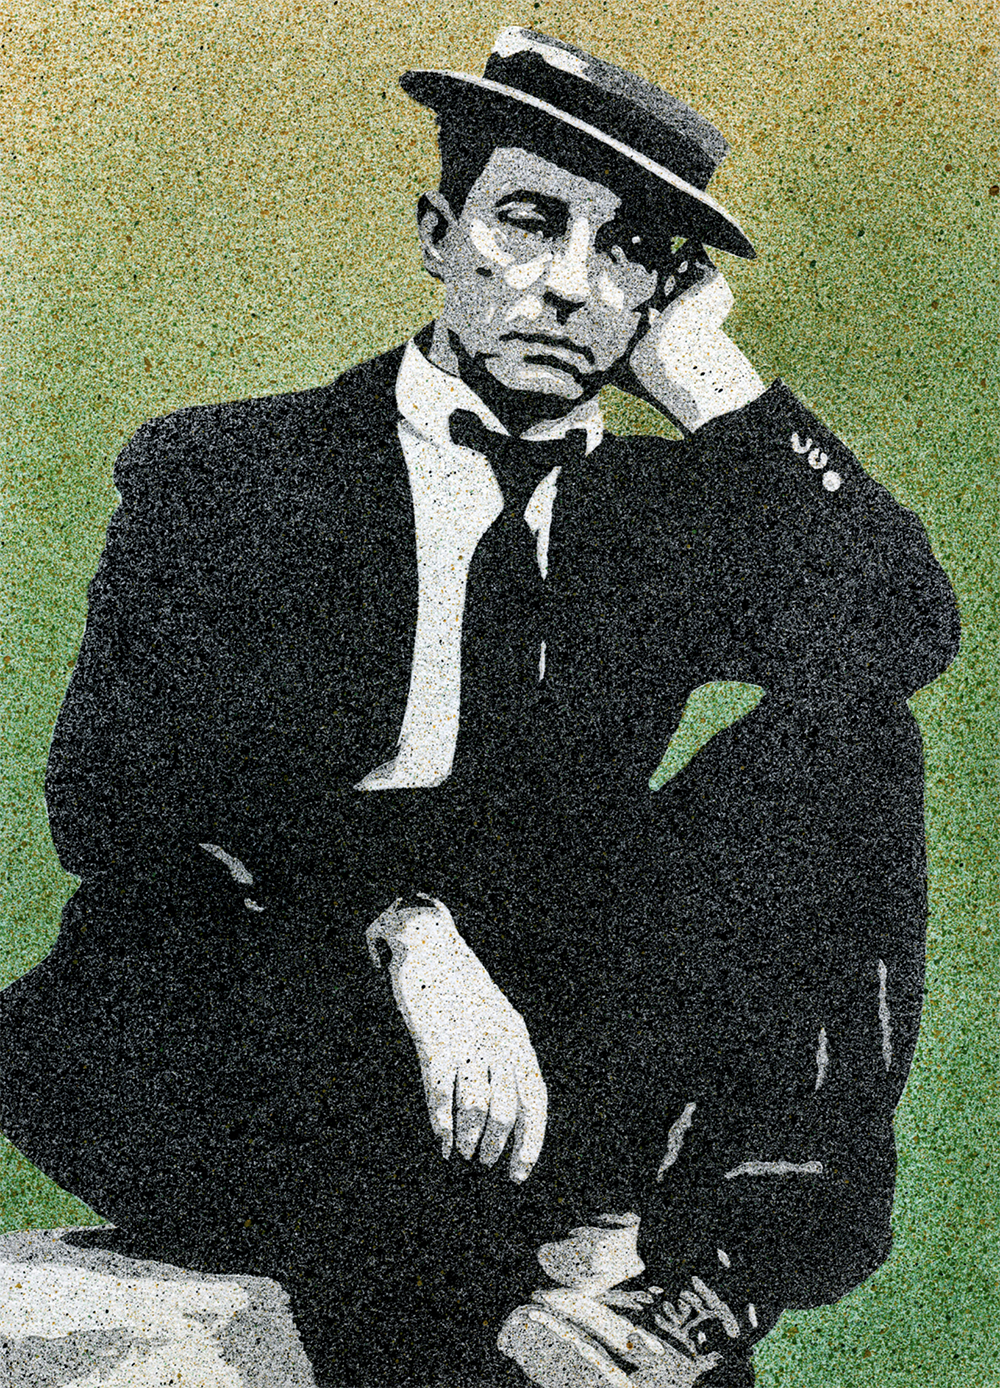 Buster (Buster Keaton)